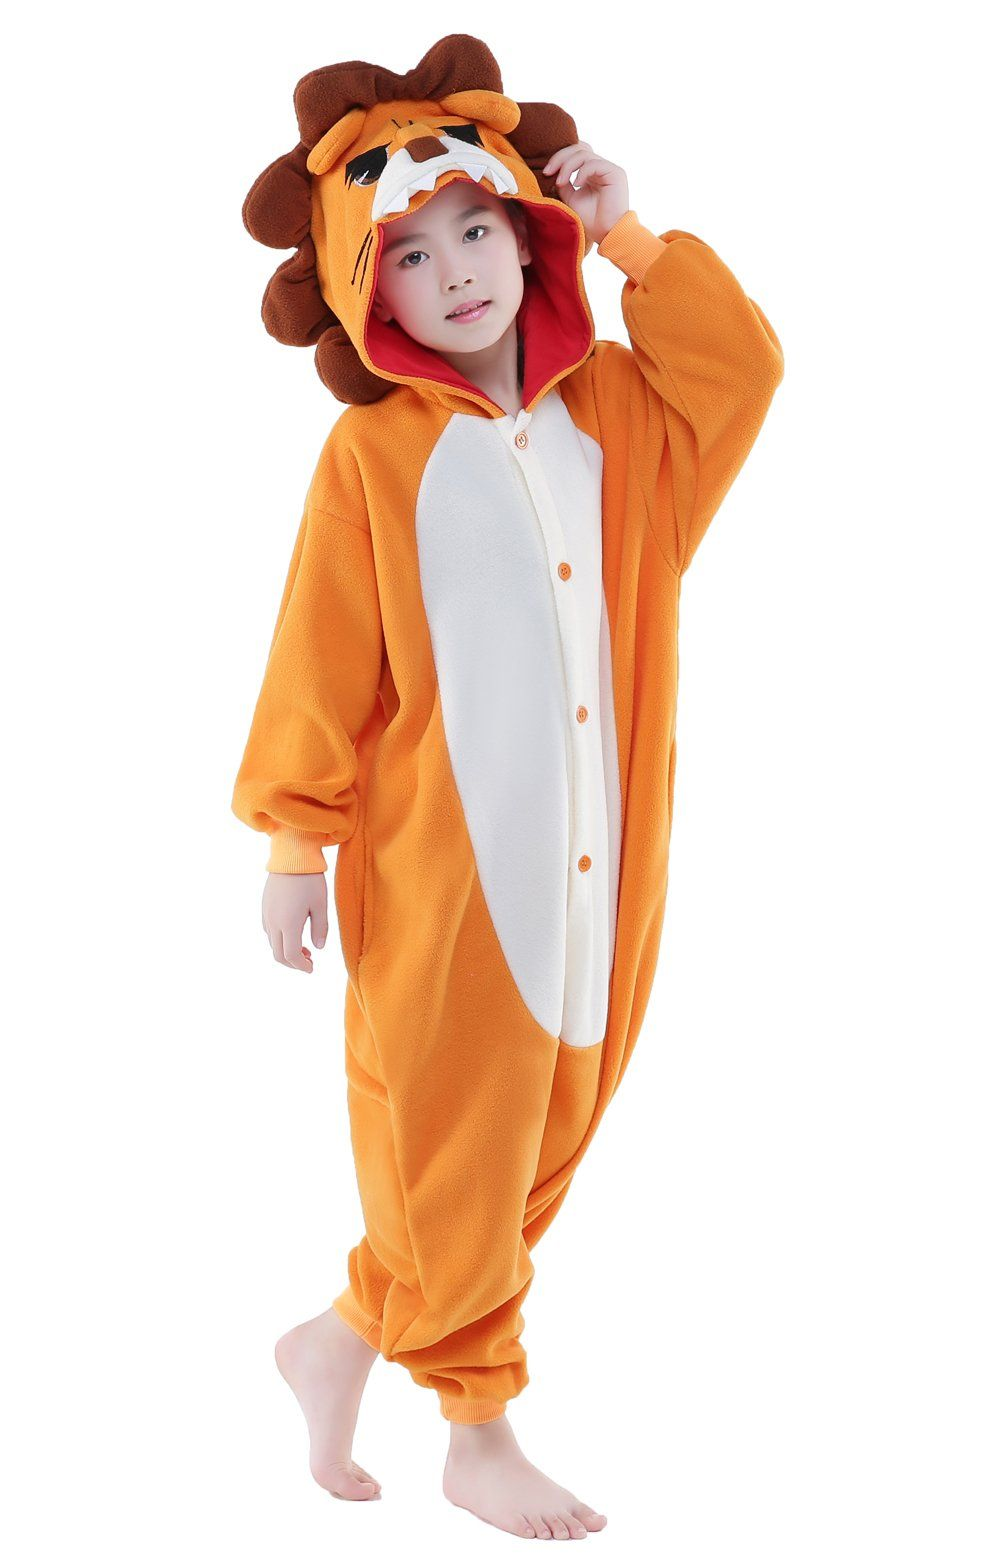 298c8ad80 Newcosplay Children Costumes Animal Onesies Sleepwear Kigurumi Pajamas Halloween  Costumes 5 for height 4547 lion >>> Click picture for more information.